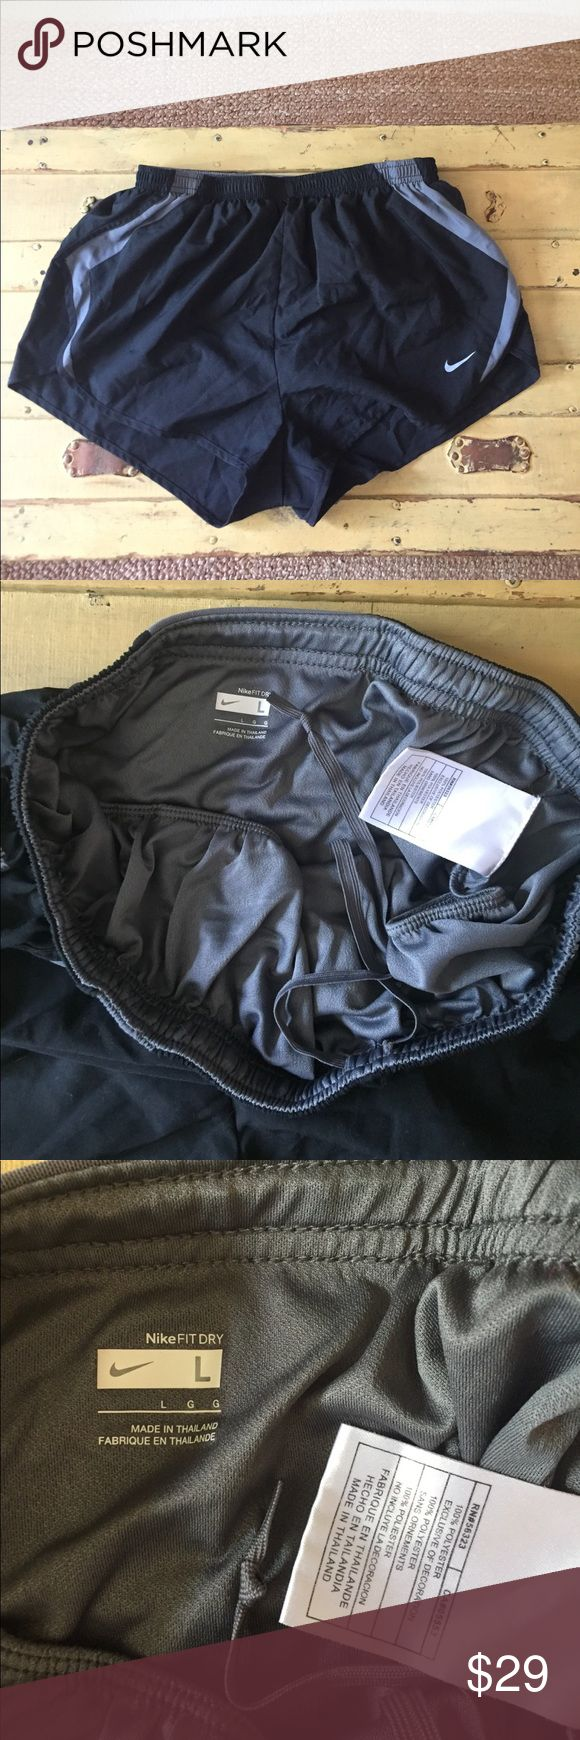 Nike fit dry black running shorts lined L Open to ALL REASONABLE offers--*Please give me your best offer and I will do my best to accommodate-no lowballing COMBINED SHIPPING DISCOUNT FOR MULTIPLE ITEMS All items come from a CLEAN, SMOKE-FREE home No modeling: Due to volume of items for sale,  I cannot accommodate modeling items-many items also for sale b/c they no longer fit me properly – thank you for your understanding with this Nike Shorts